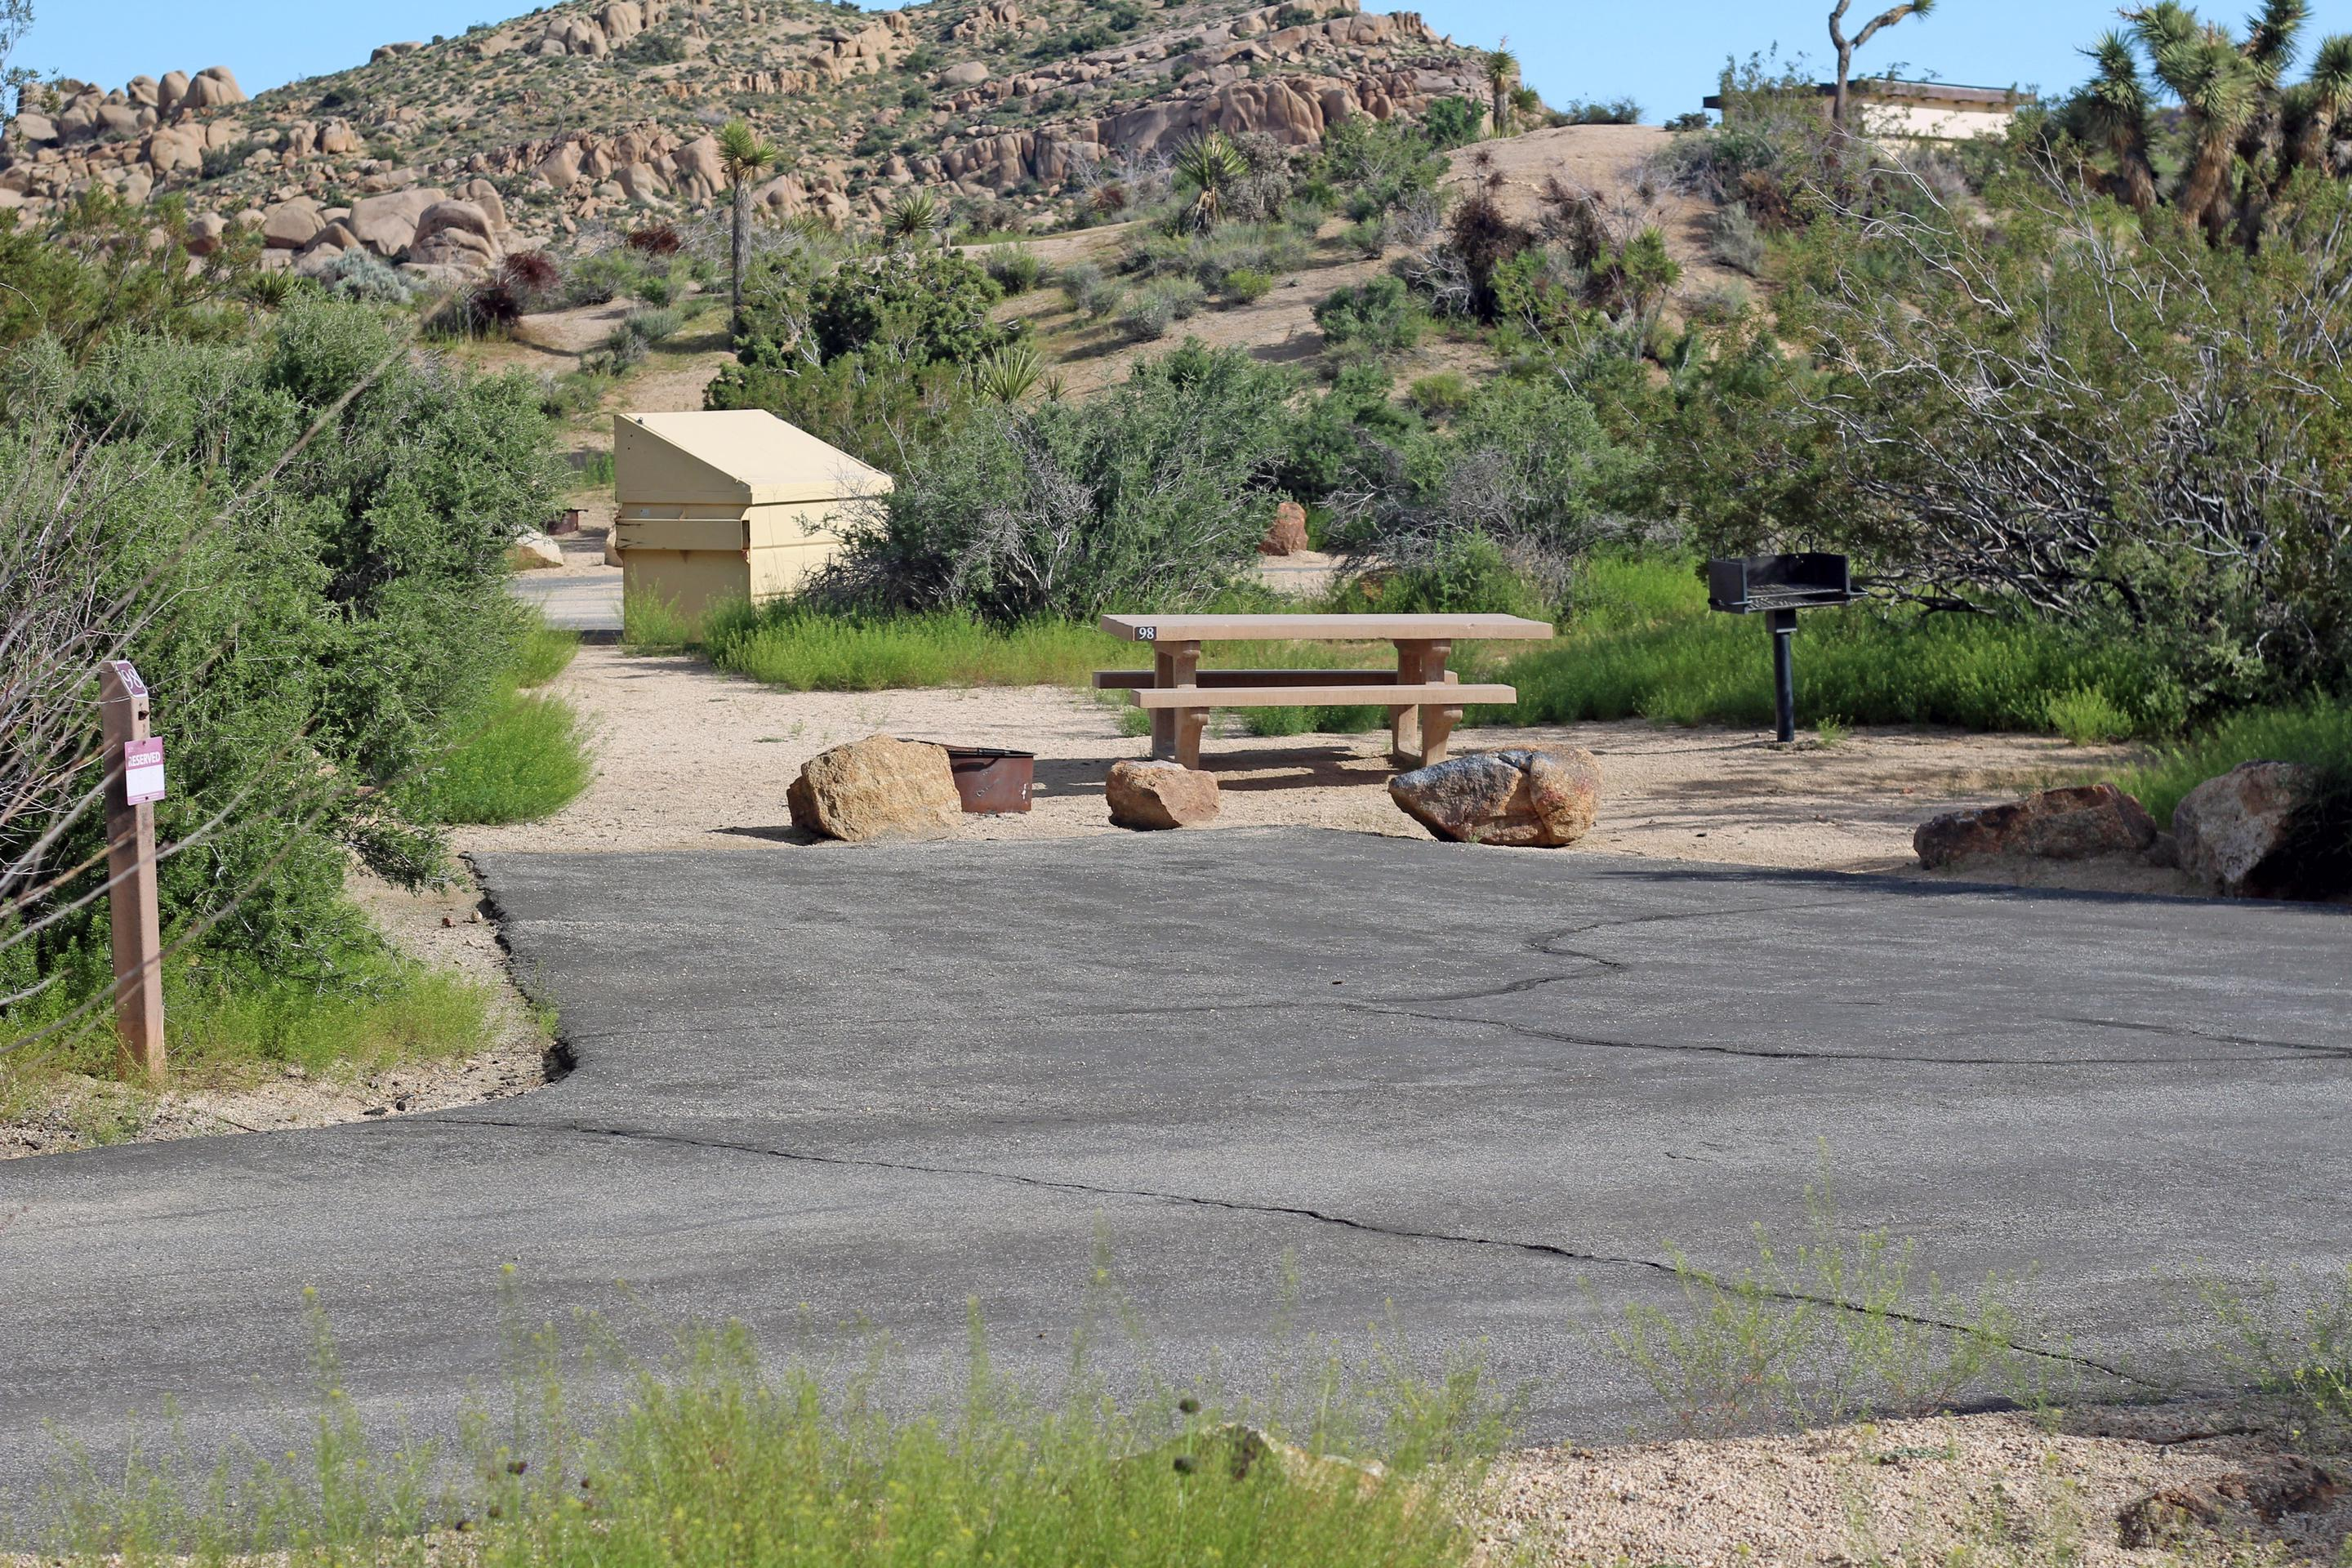 Parking and campsite. Picnic table surrounded by boulders and green plants.Parking and campsite.